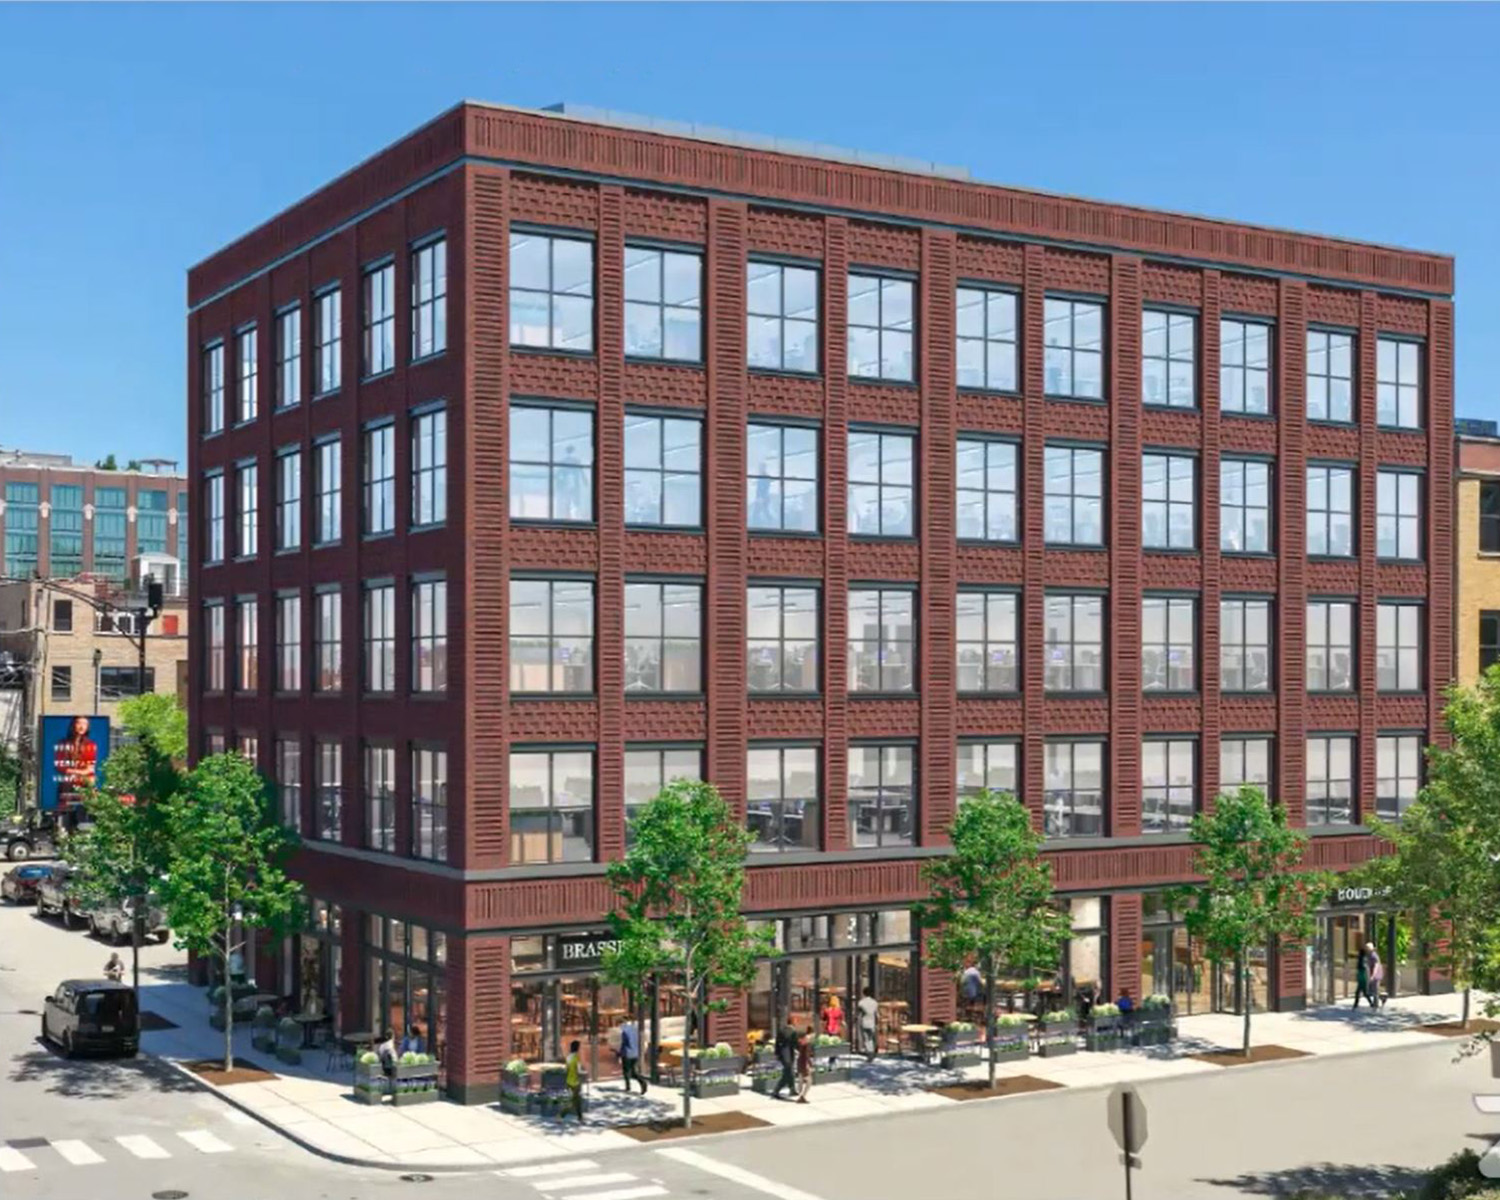 1020 W Randolph Street. Rendering by OKW Architects